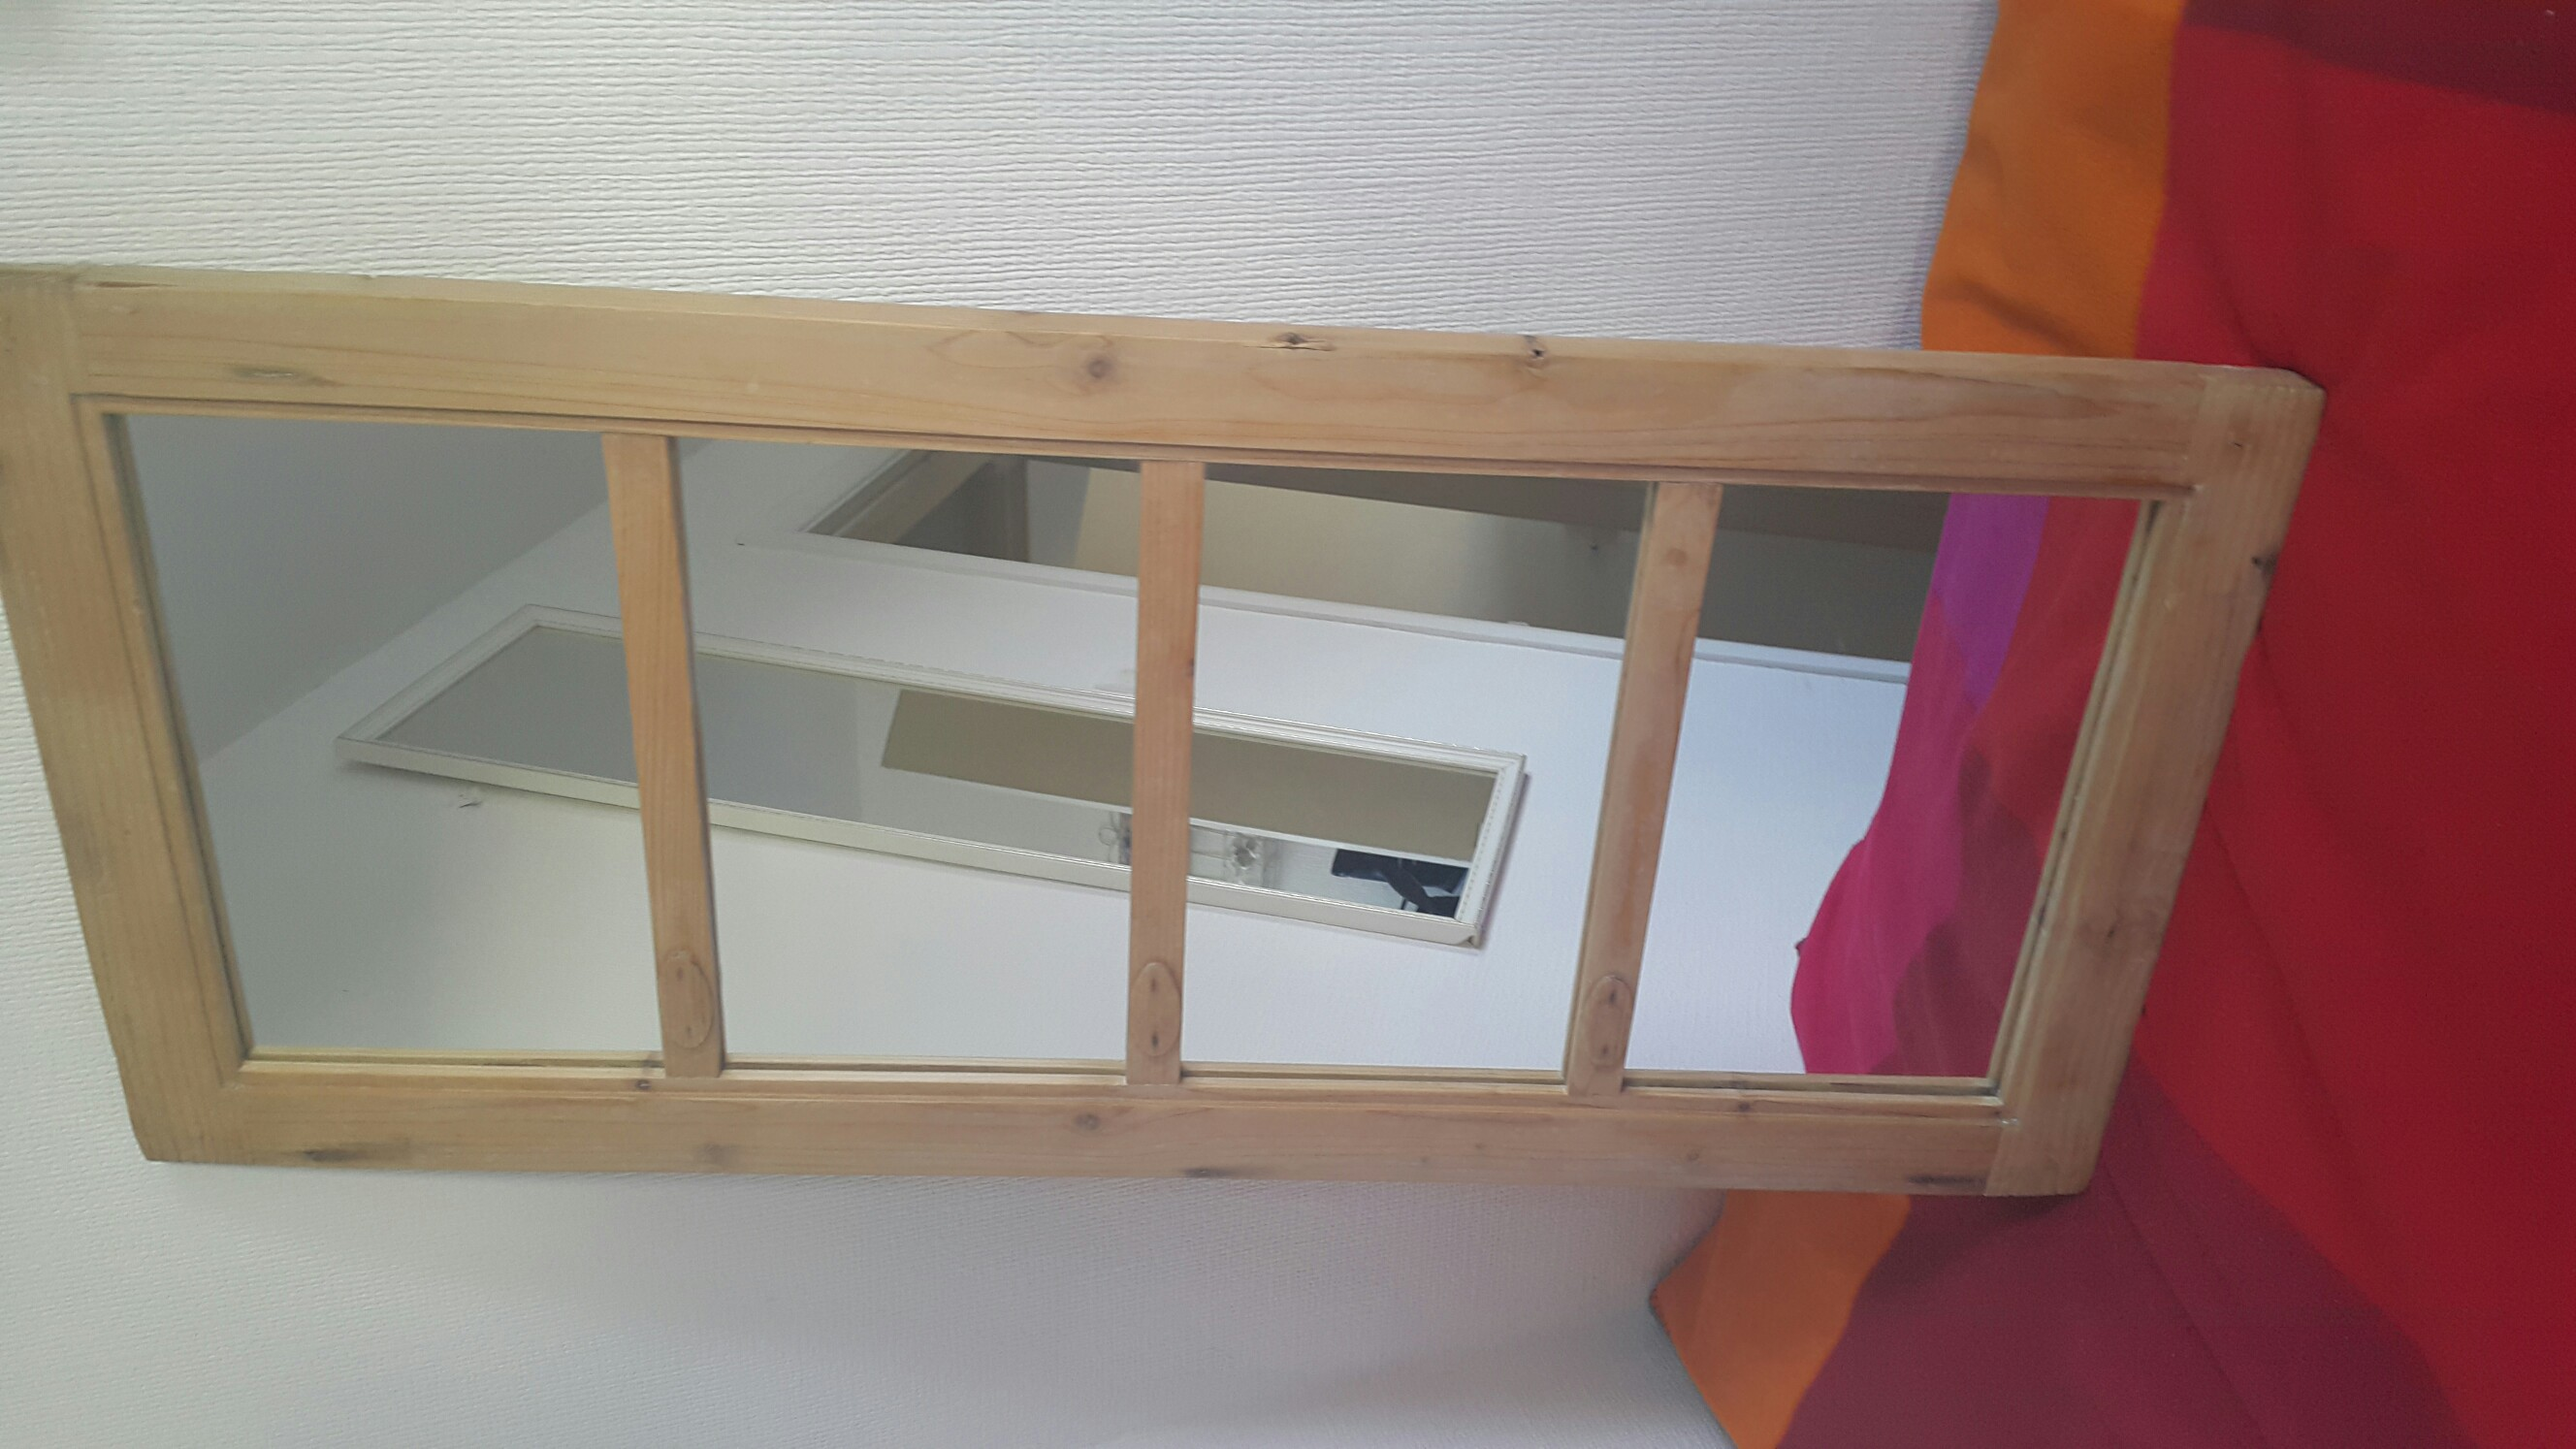 Window mirrors for sale in uk 42 used window mirrors for Window mirrors for sale